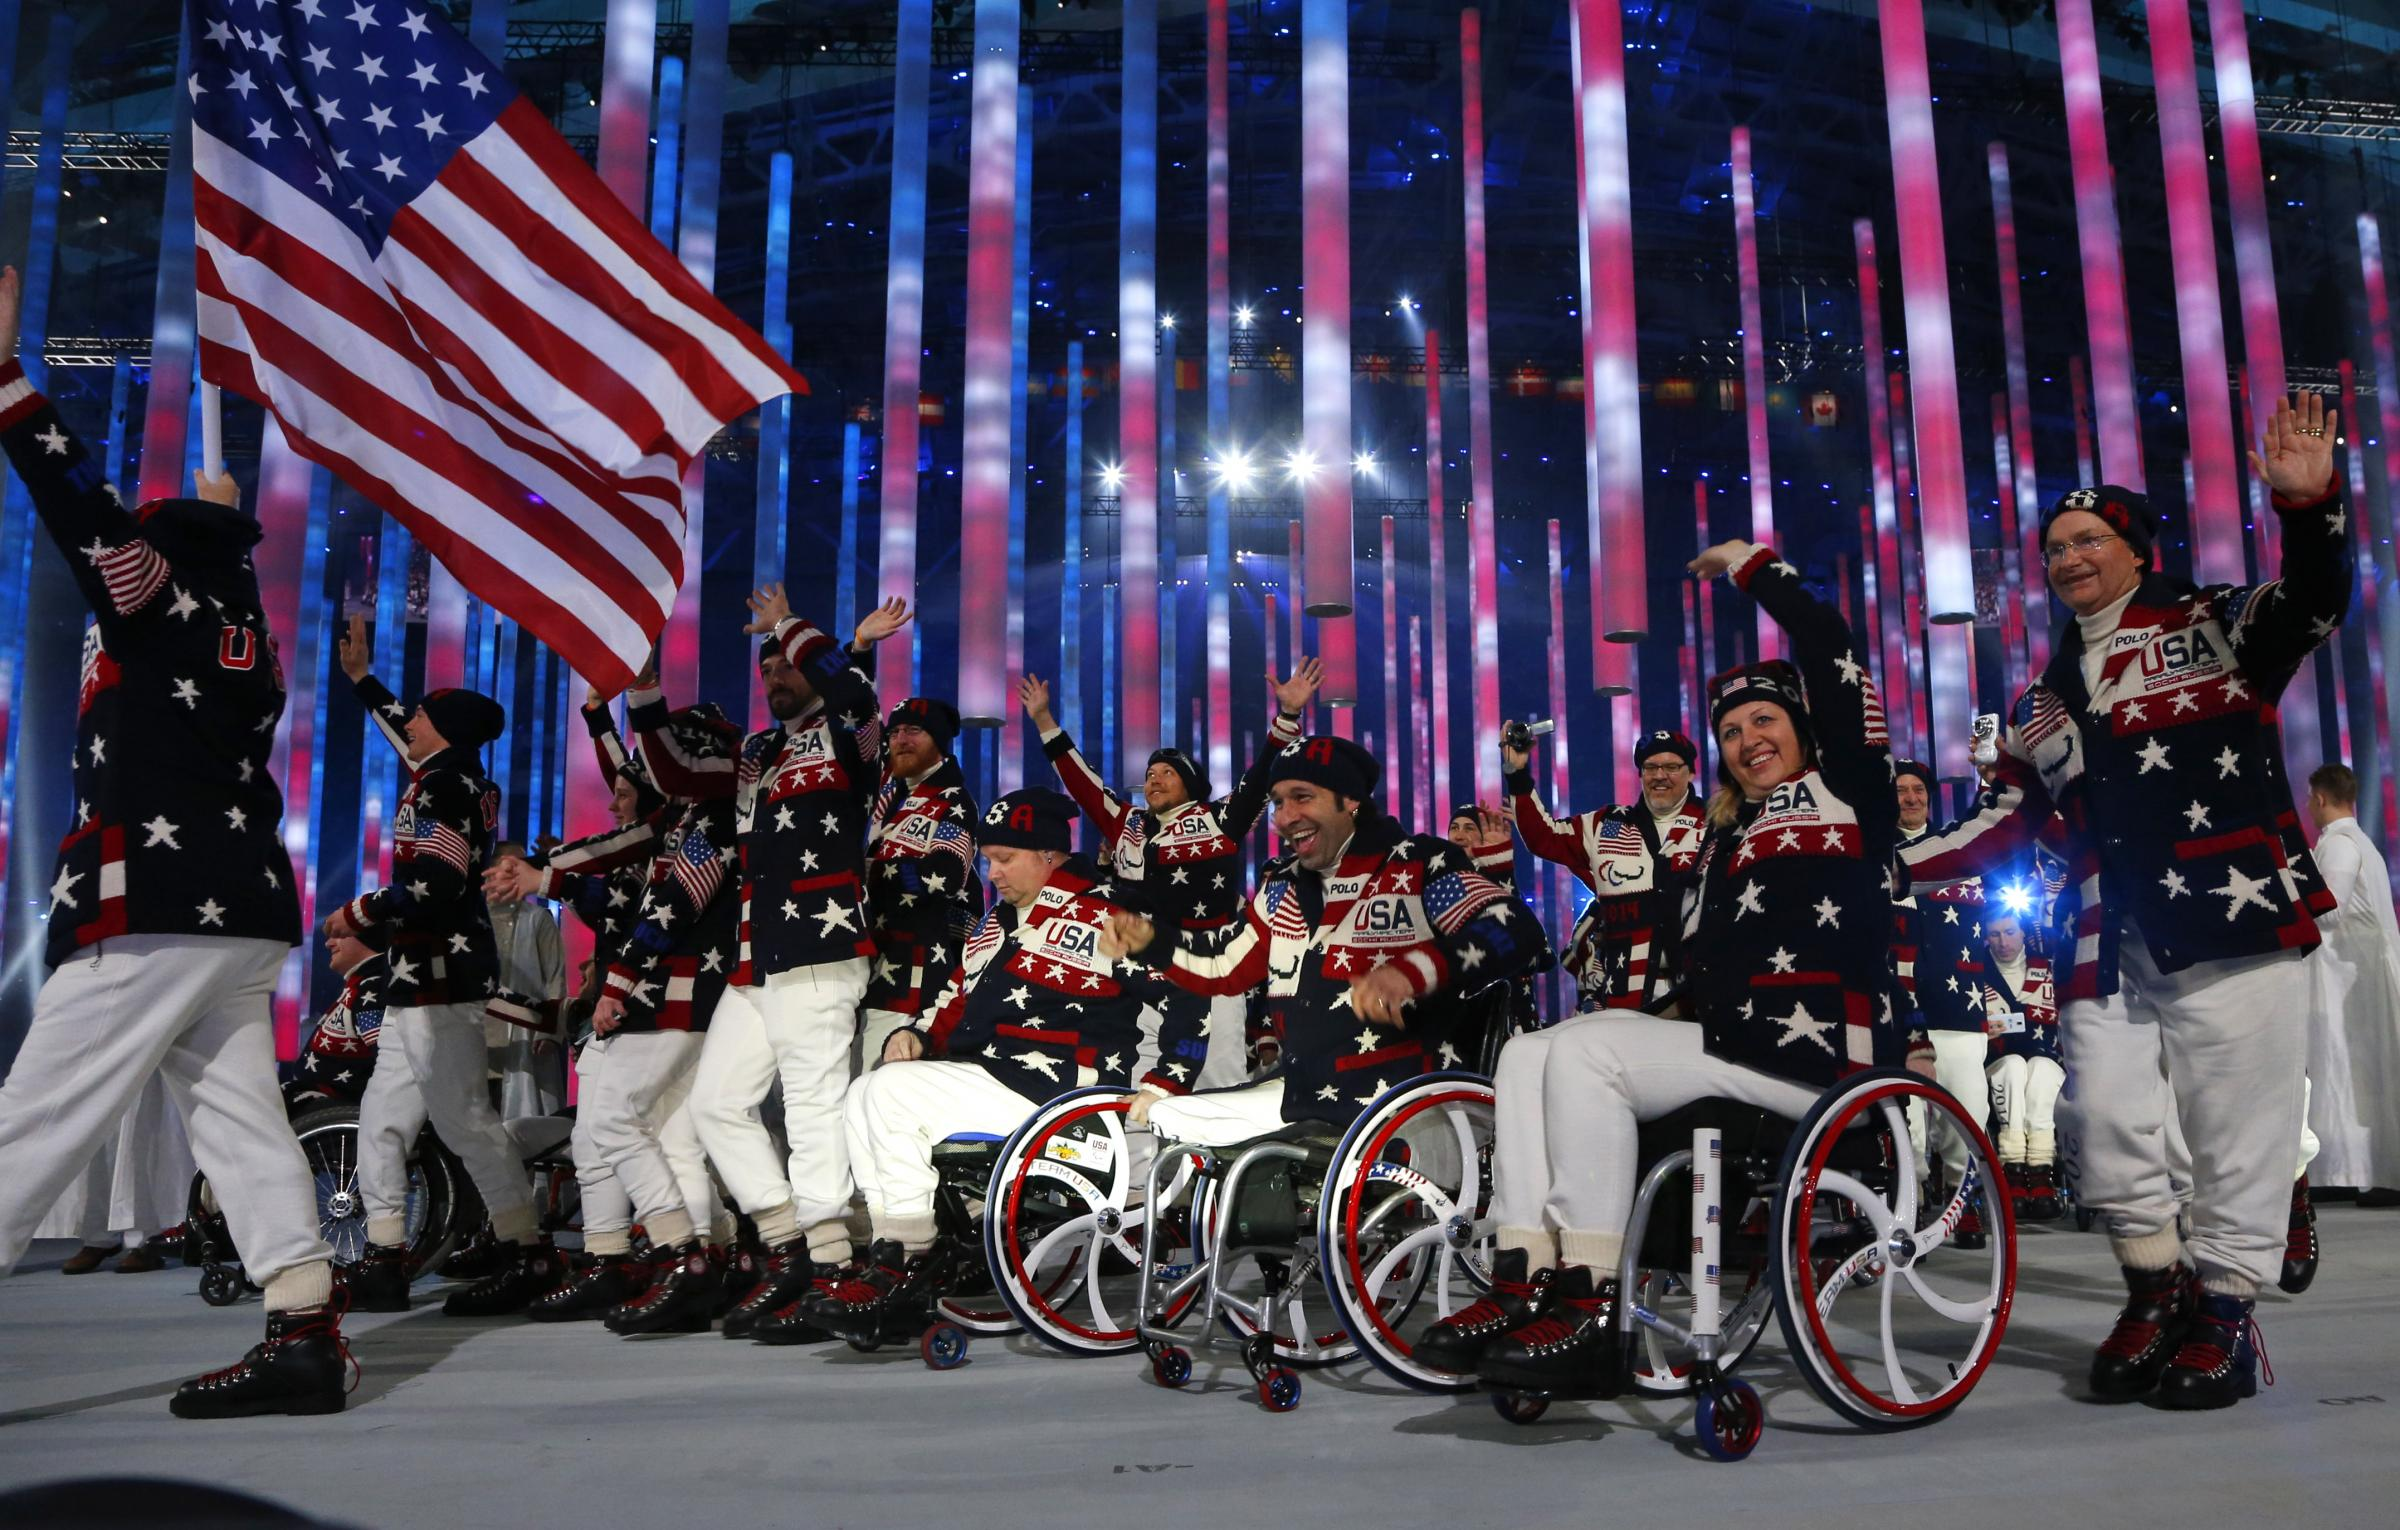 Opening of the Paralympic Games in Sochi - Goodbye, America